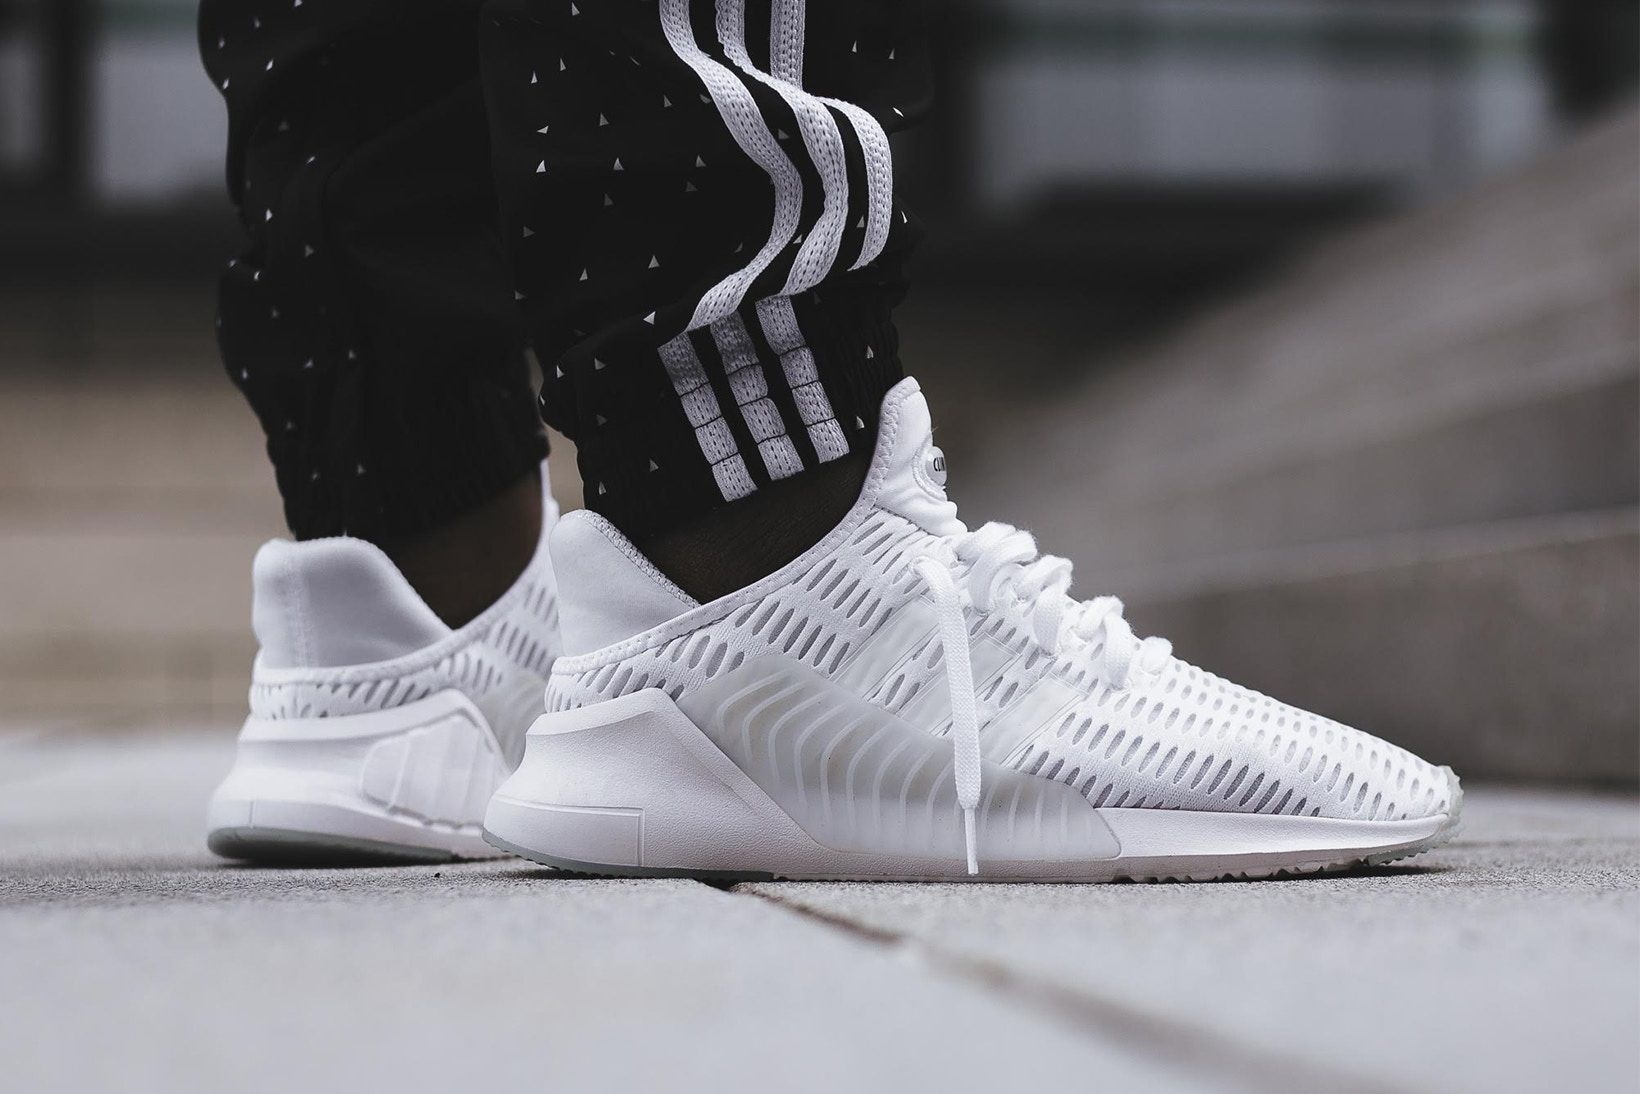 adidas ClimaCool 02 17 Triple White Black On Feet Sneakers Shoes Footwear  2017 August Release Date